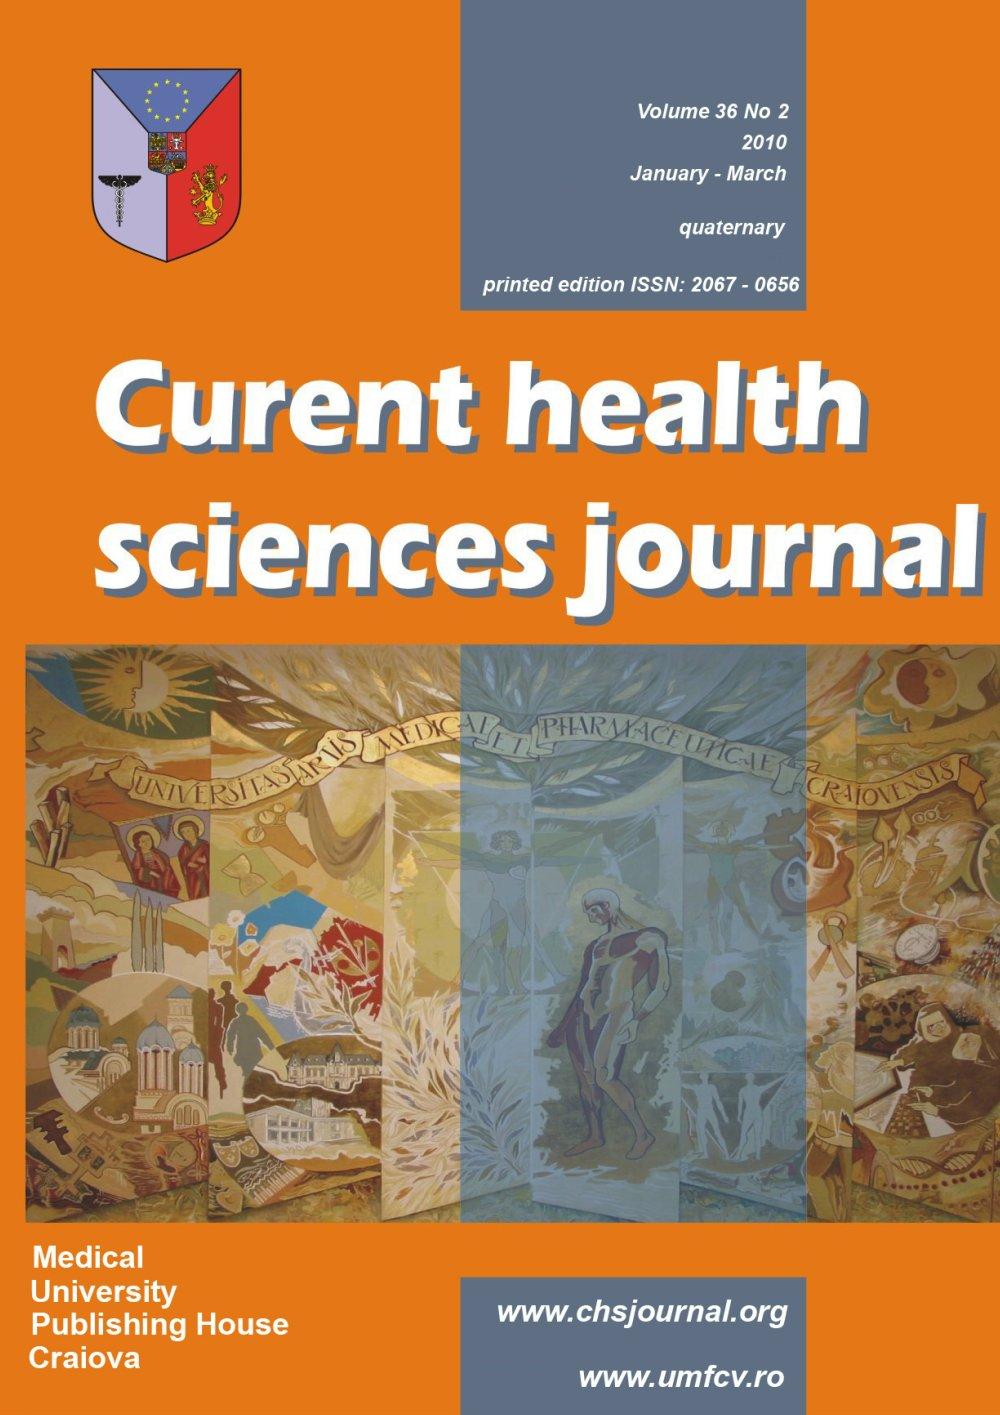 Current Health Sciences Journal, vol. 36 no. 2, 2010